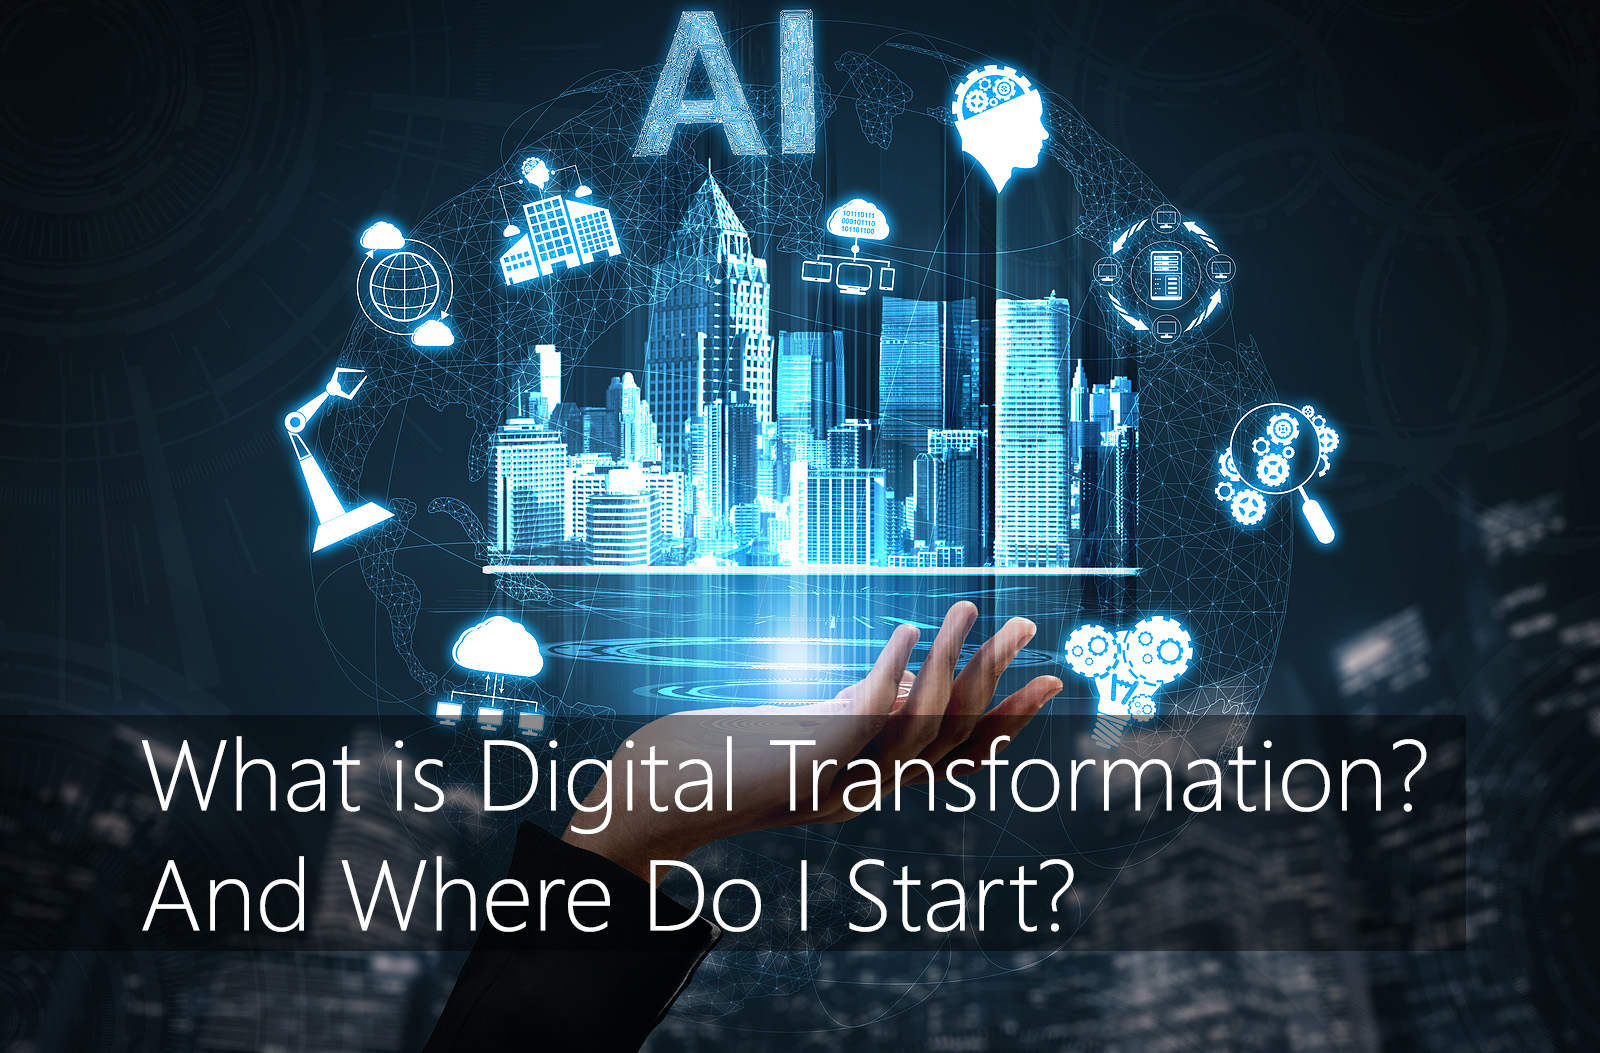 What is Digital Transformation? And Where Do I Start?